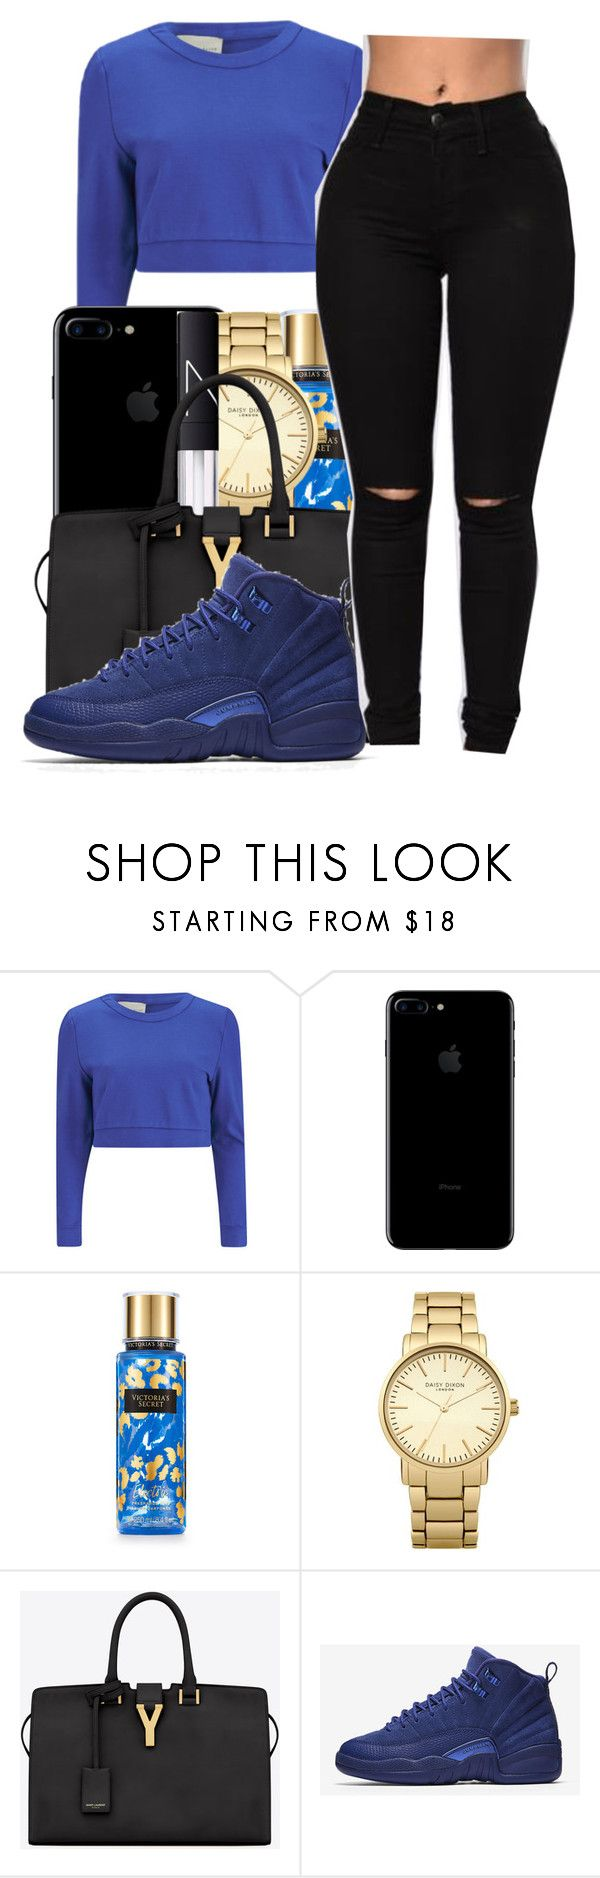 """Goosebumps✨~Travis scott"" by maiyaxbabyyy ❤ liked on Polyvore featuring Lavish Alice, Victoria's Secret, Topshop, NARS Cosmetics, Yves Saint Laurent and NIKE"